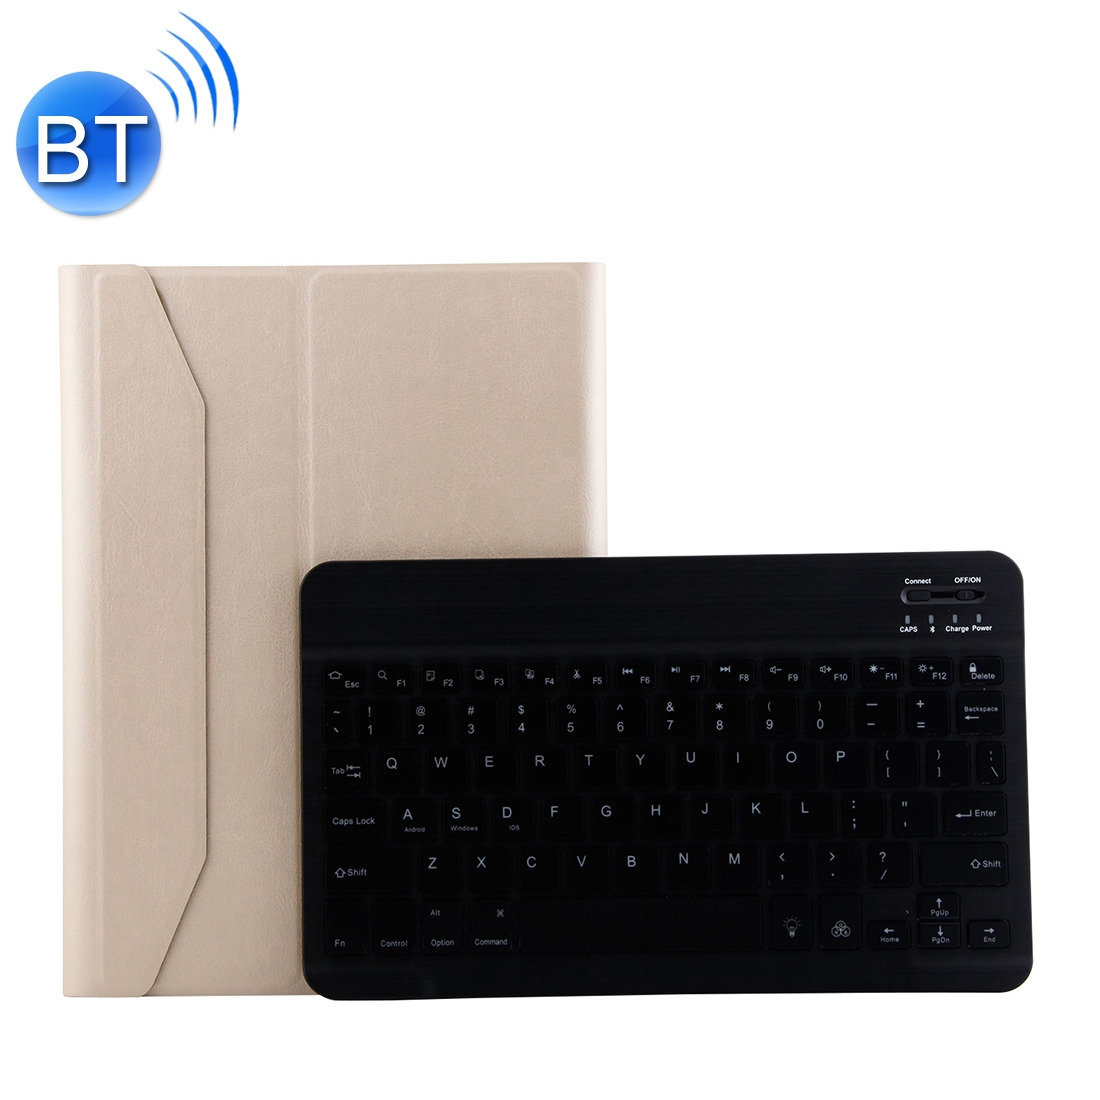 iPad Air 2 Case With Keyboard With Leather Case For iPad Air/Air 2/Pro 9.7 inch  (Gold)